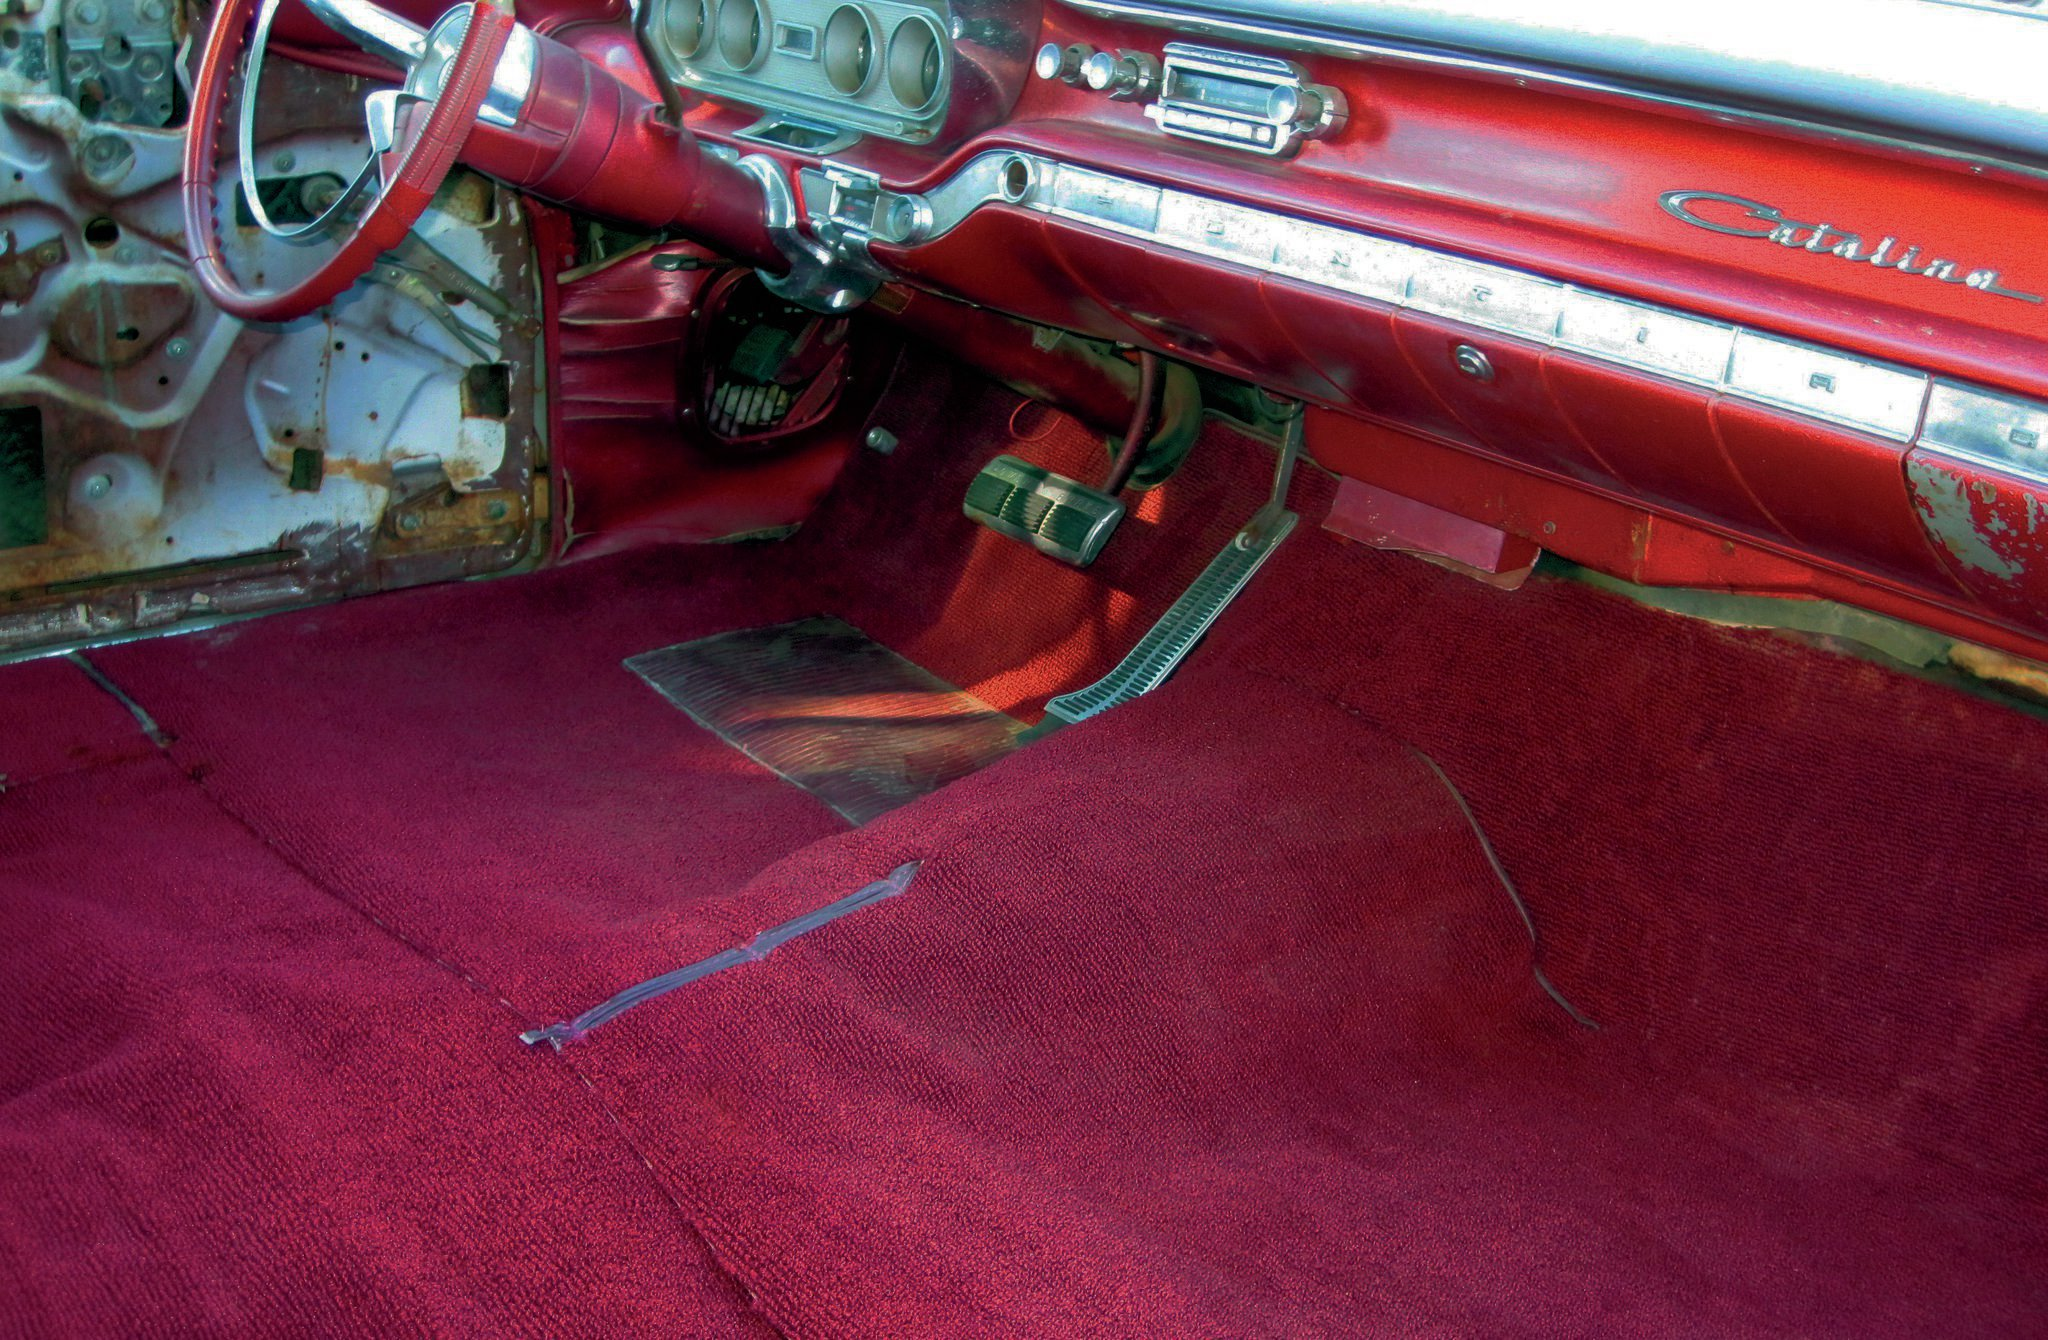 Like lipstick on a pig, fresh new carpeting on the floor of a '60s vintage vehicle could be hiding a rusty floor. Here we'll give you a glimpse of what to expect and an option for repairing what you find, even though you may not have the expertise or access to a welder. Check it out.